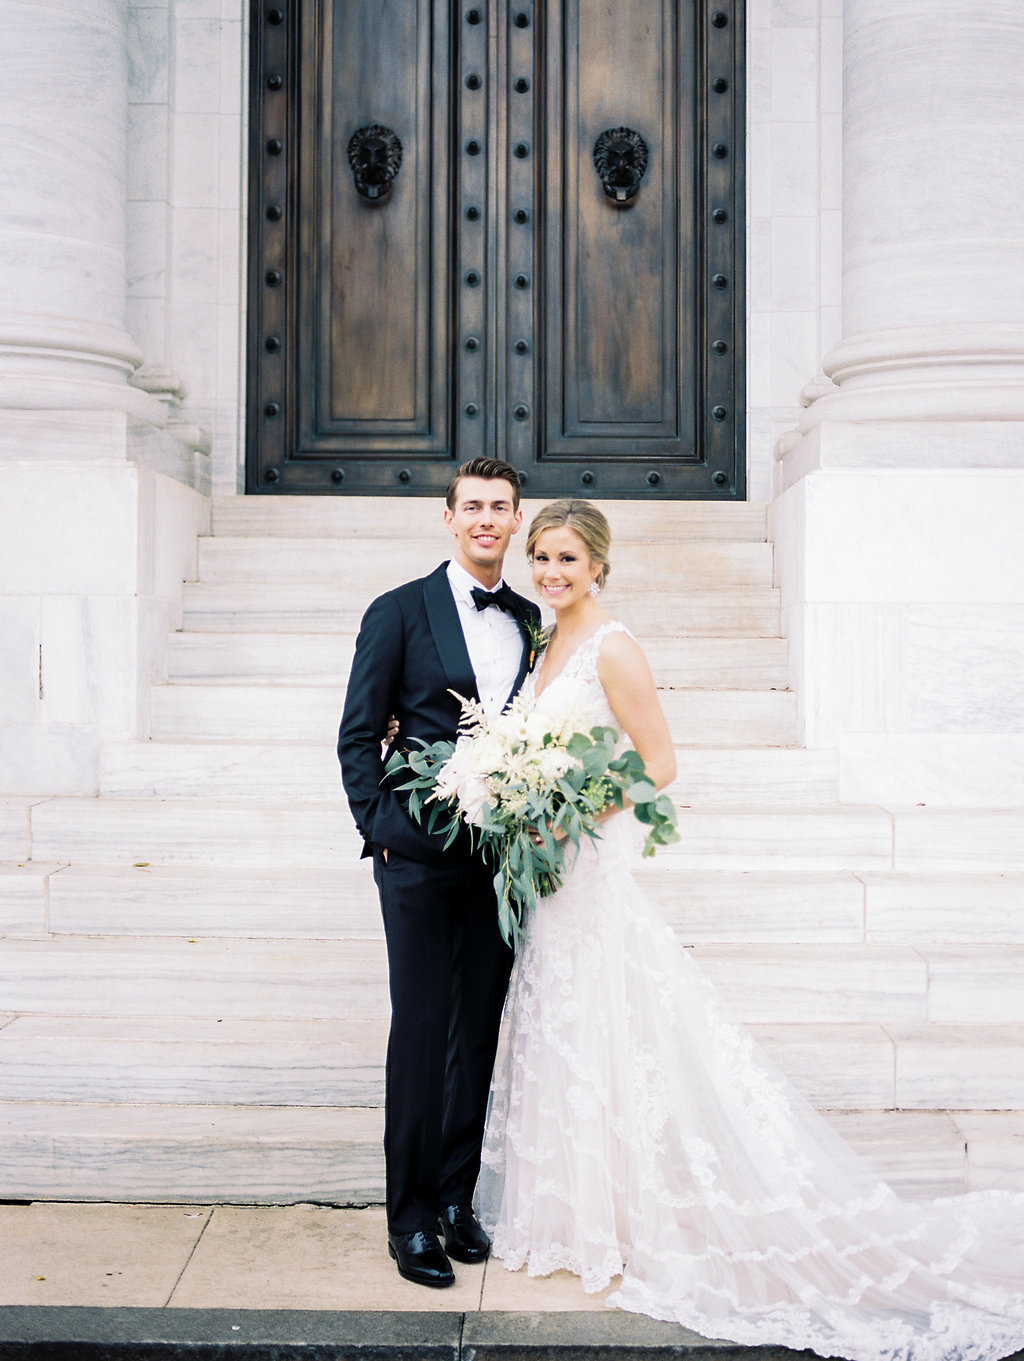 Copper and White DC Wedding at DAR. DC Wedding Planner Bright Occasions. Photo by Lissa Ryan Photography